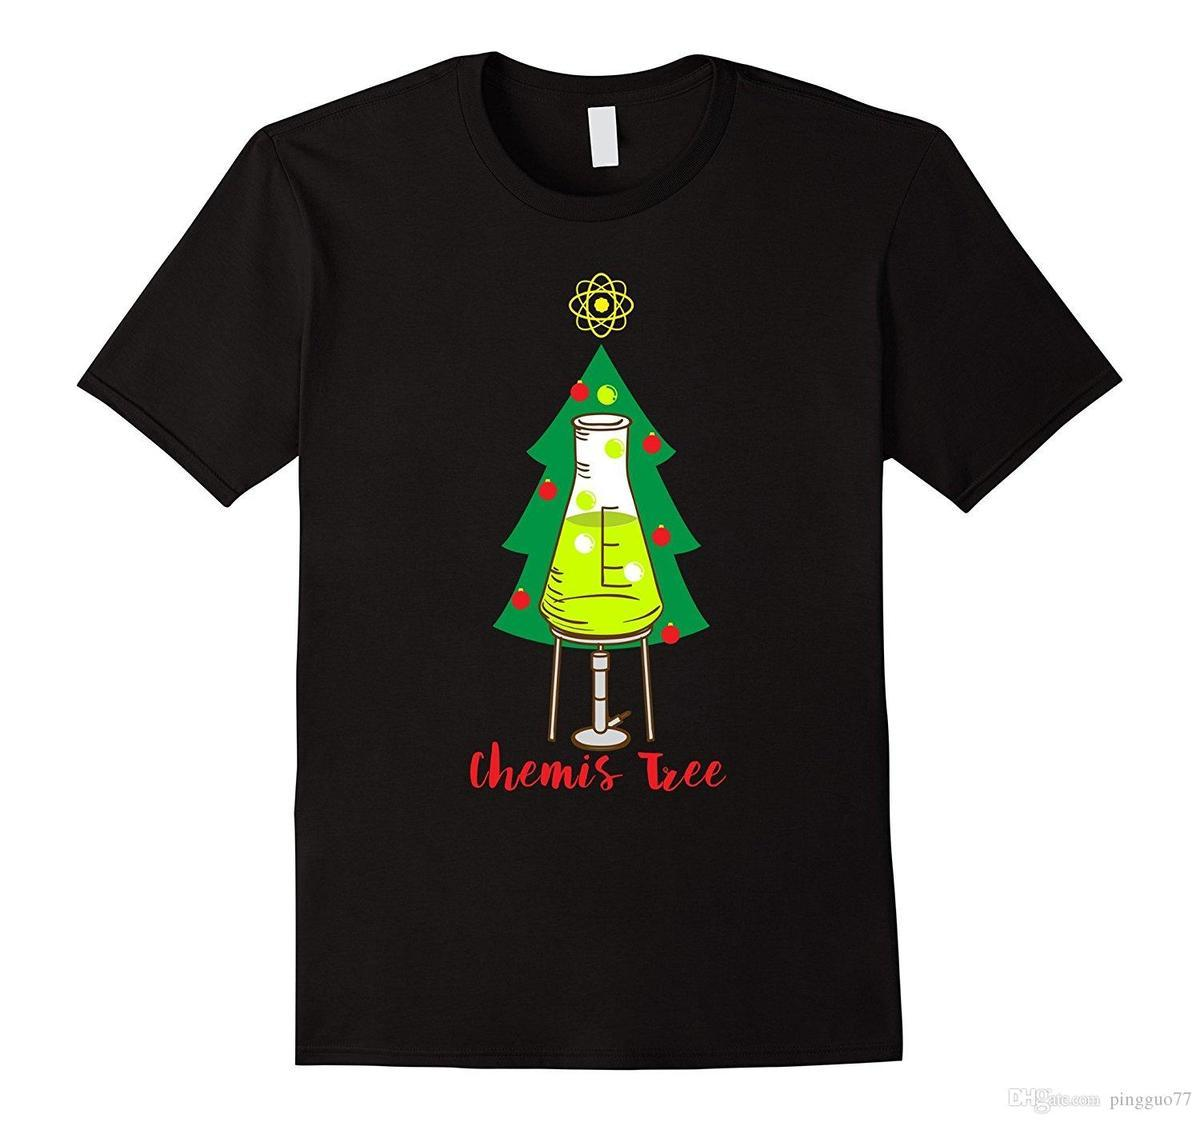 Christmas Pun.Chemis Tree Funny Science Chemistry Christmas Pun T Shirt Summer Short Sleeve Shirts Tops S 3xl Big Size Cotton Tees